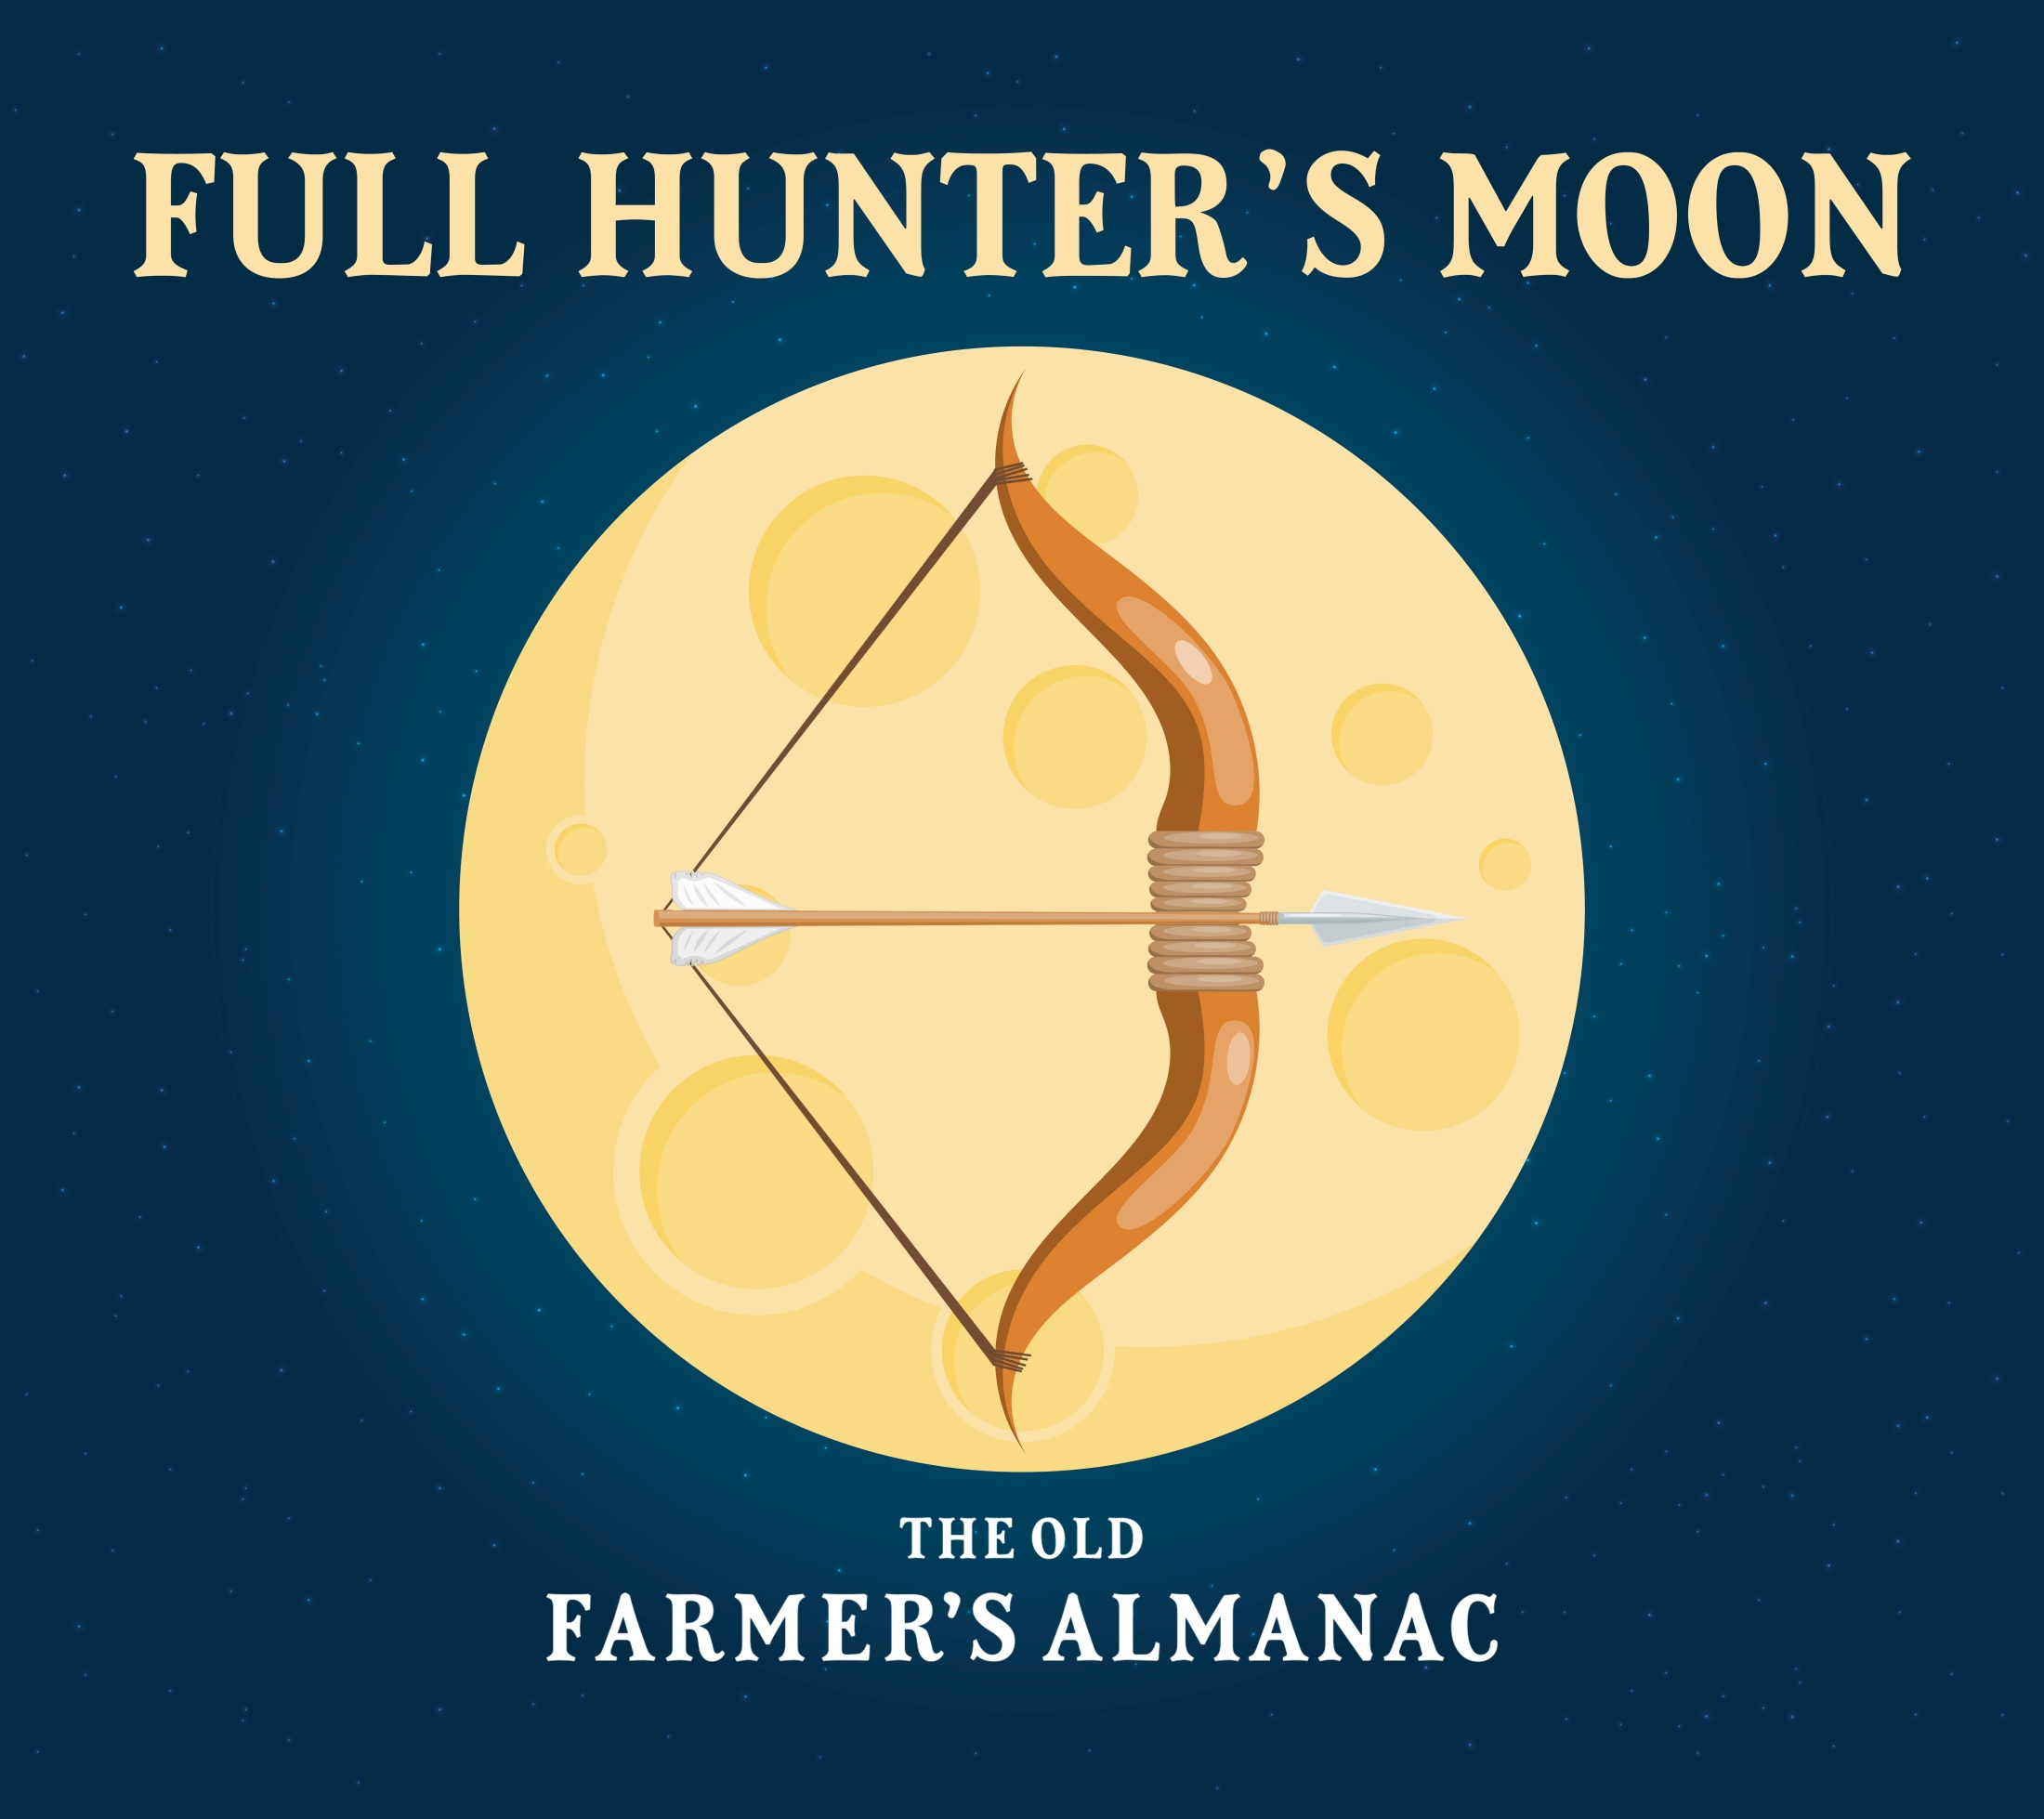 The Full Hunter's Moon: Full Moon For October 2019 | The Old